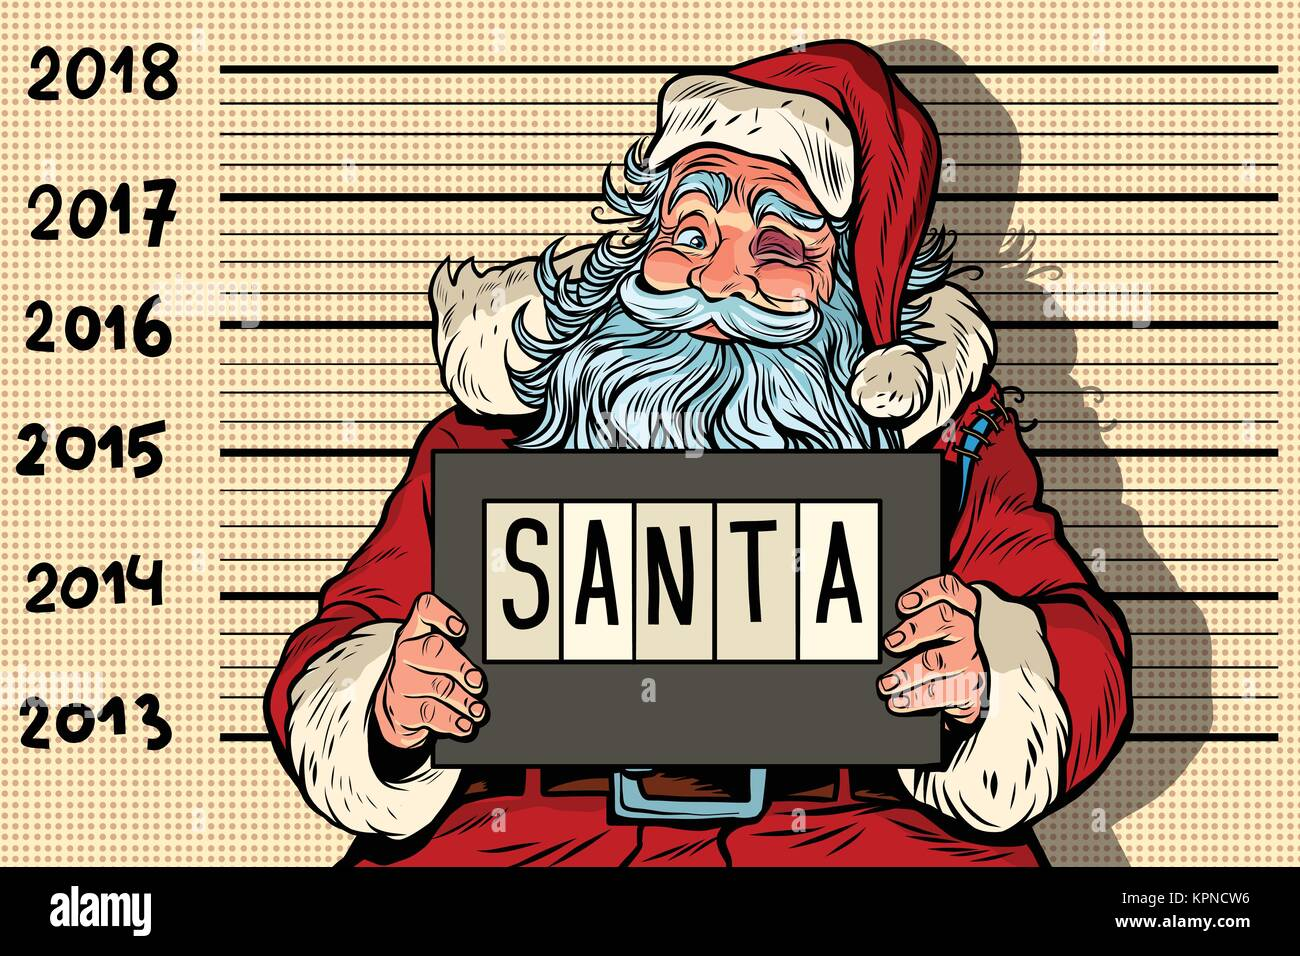 2018 new year photo funny santa claus under arrest criminal party comic book